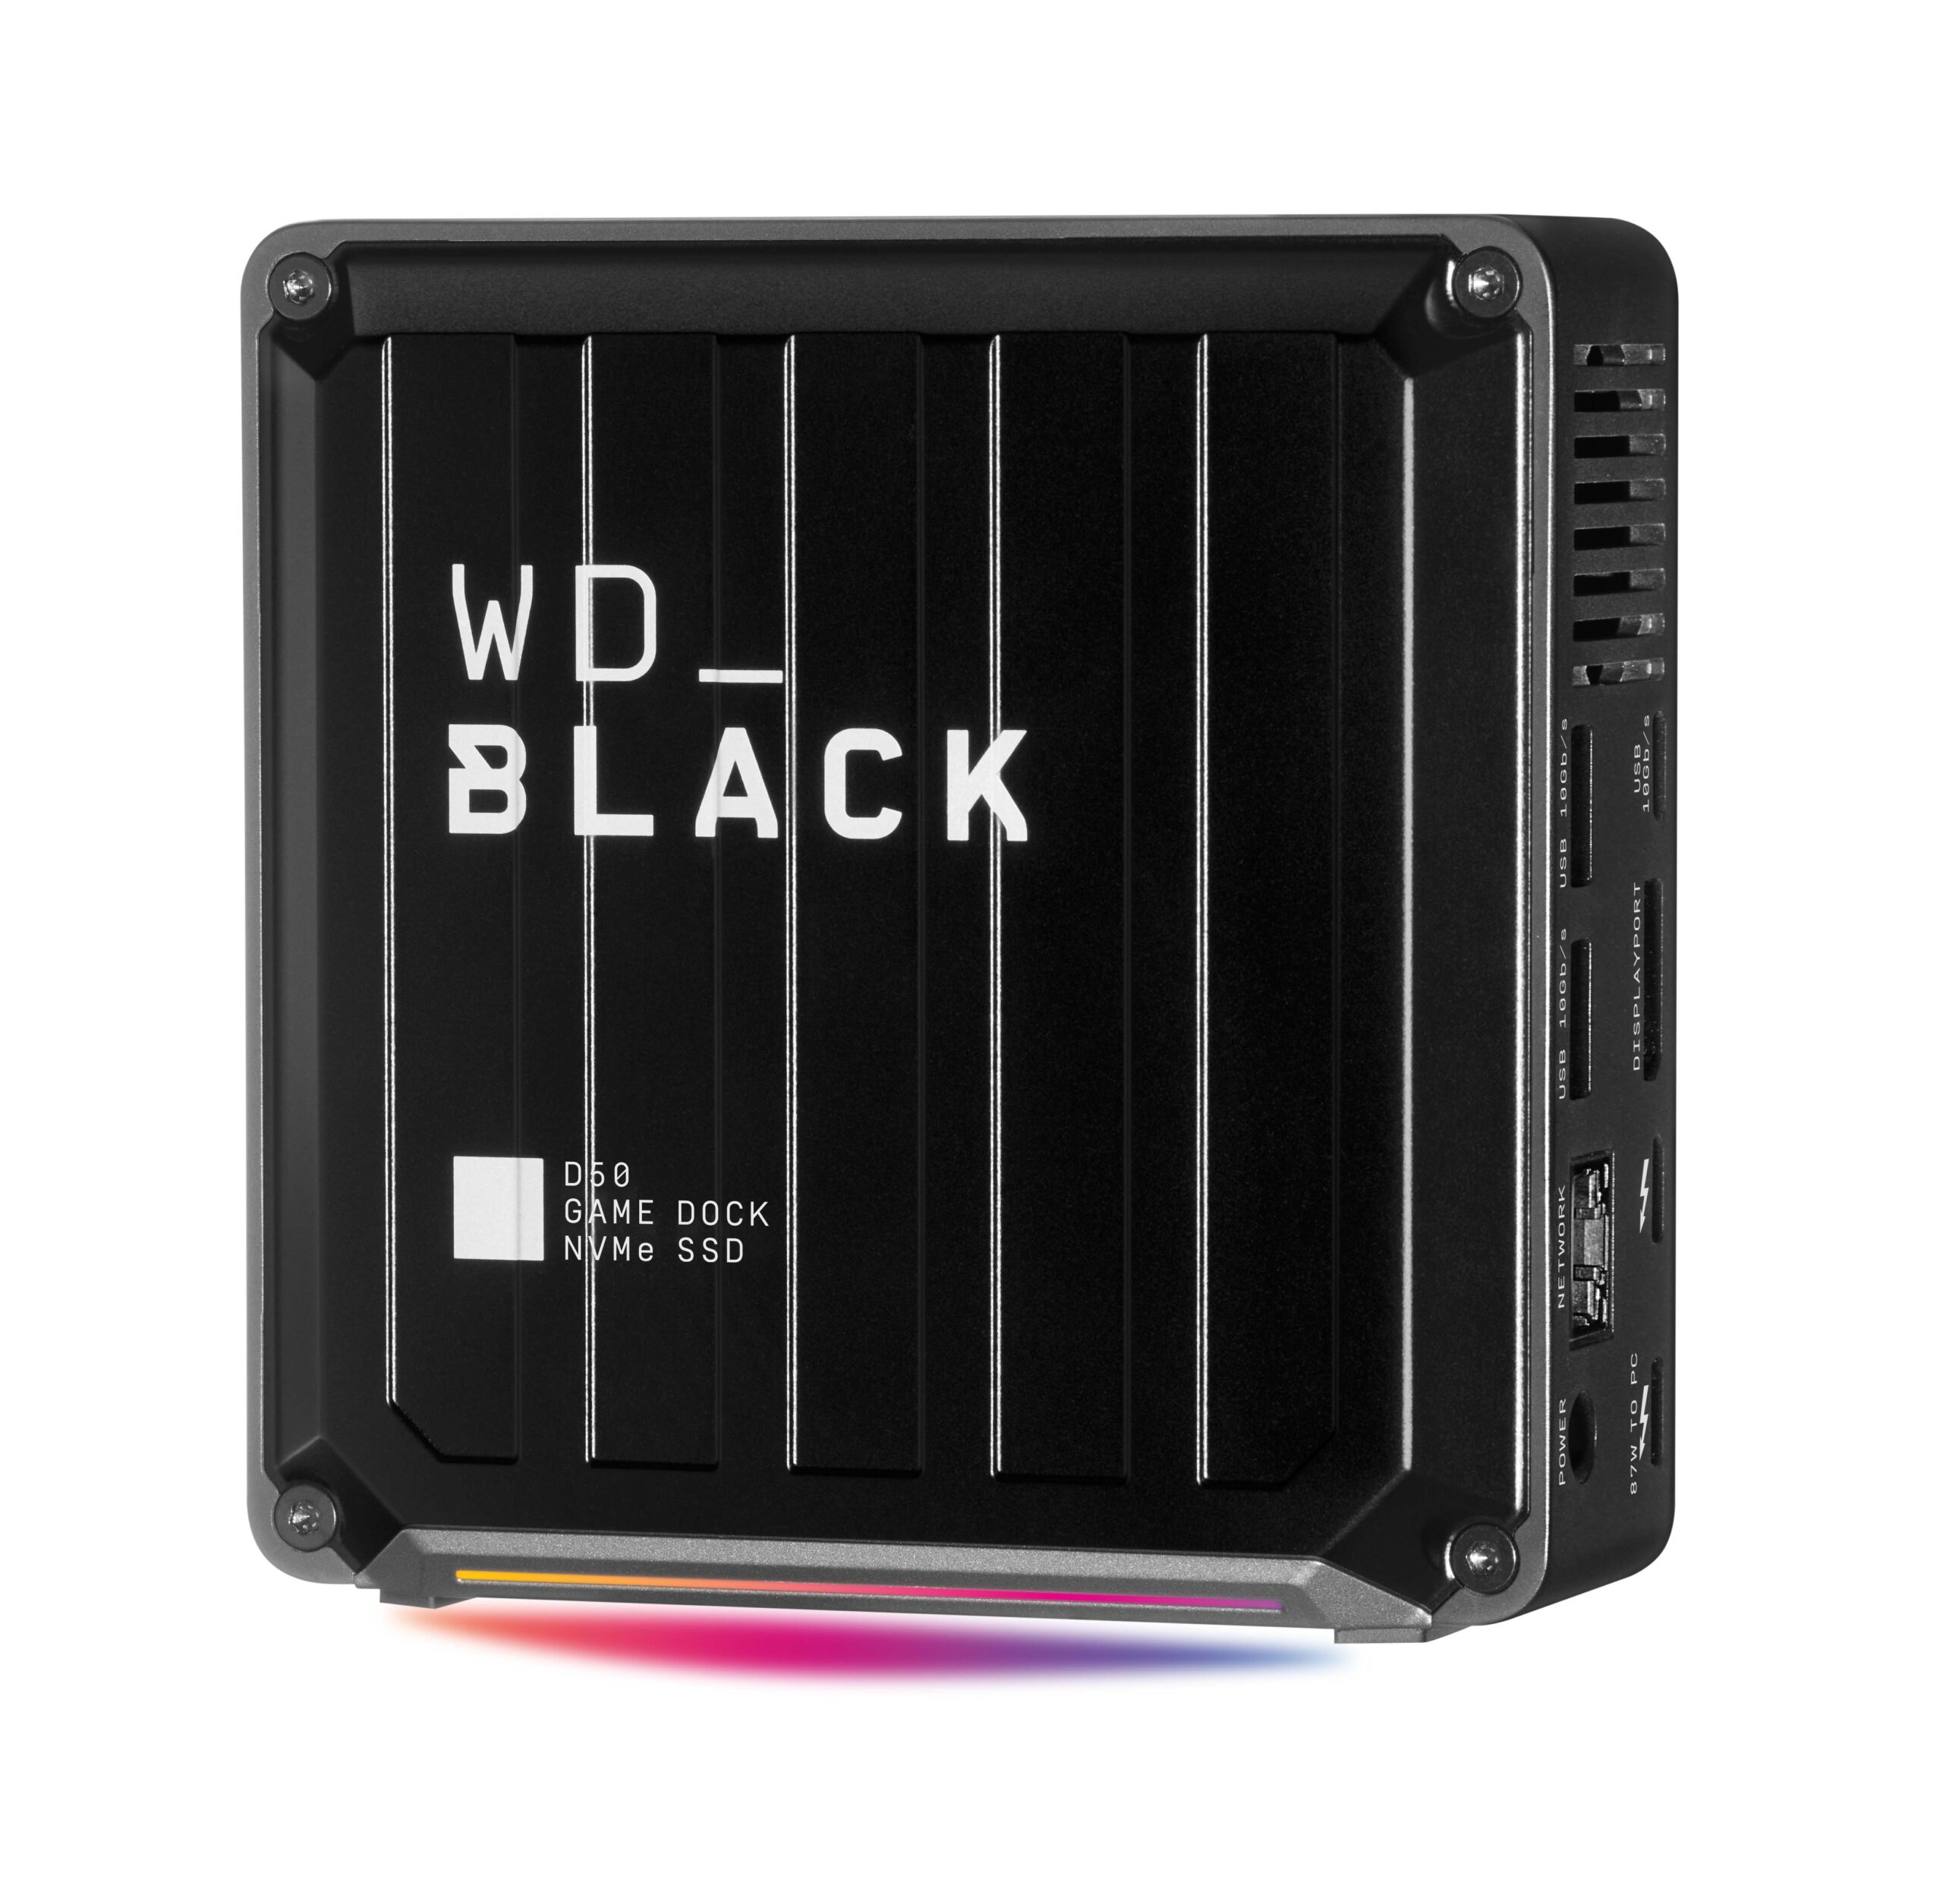 en us WD Black D50 Game Dock SSD Left scaled